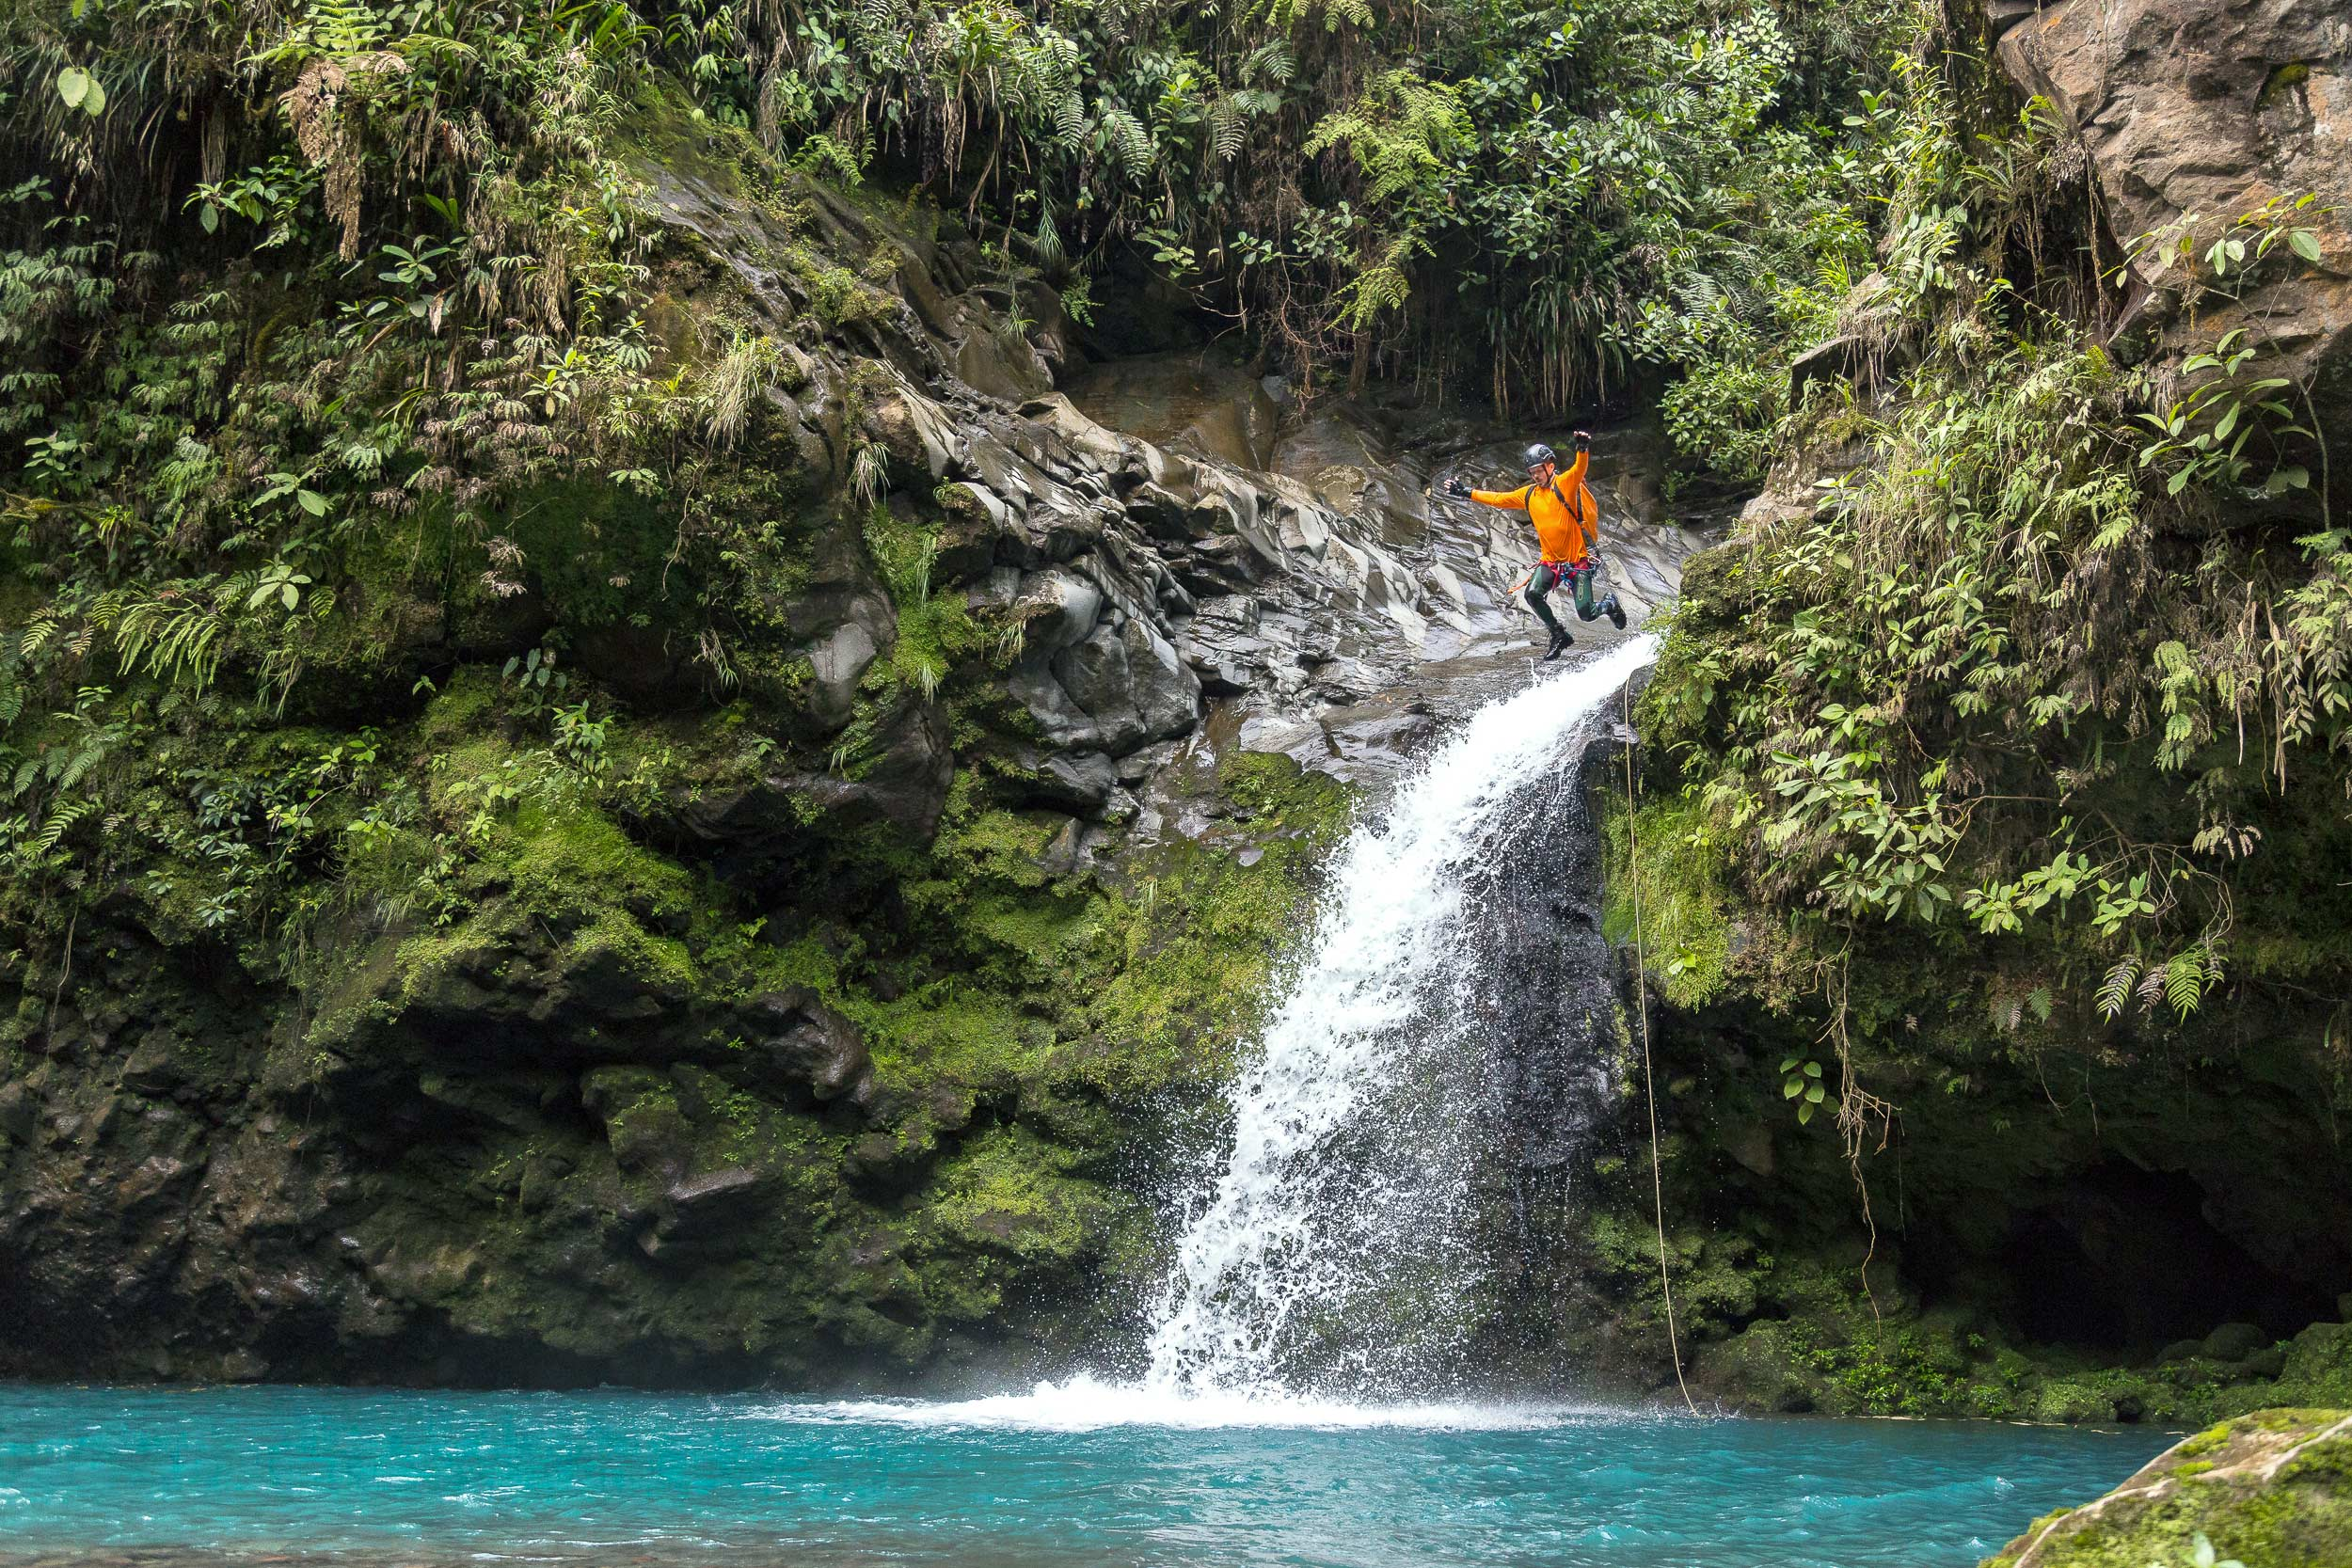 Scott jumps into one of the many emerald pools of Gata Fiera canyon. Photo: Victor Hugo Carvajal